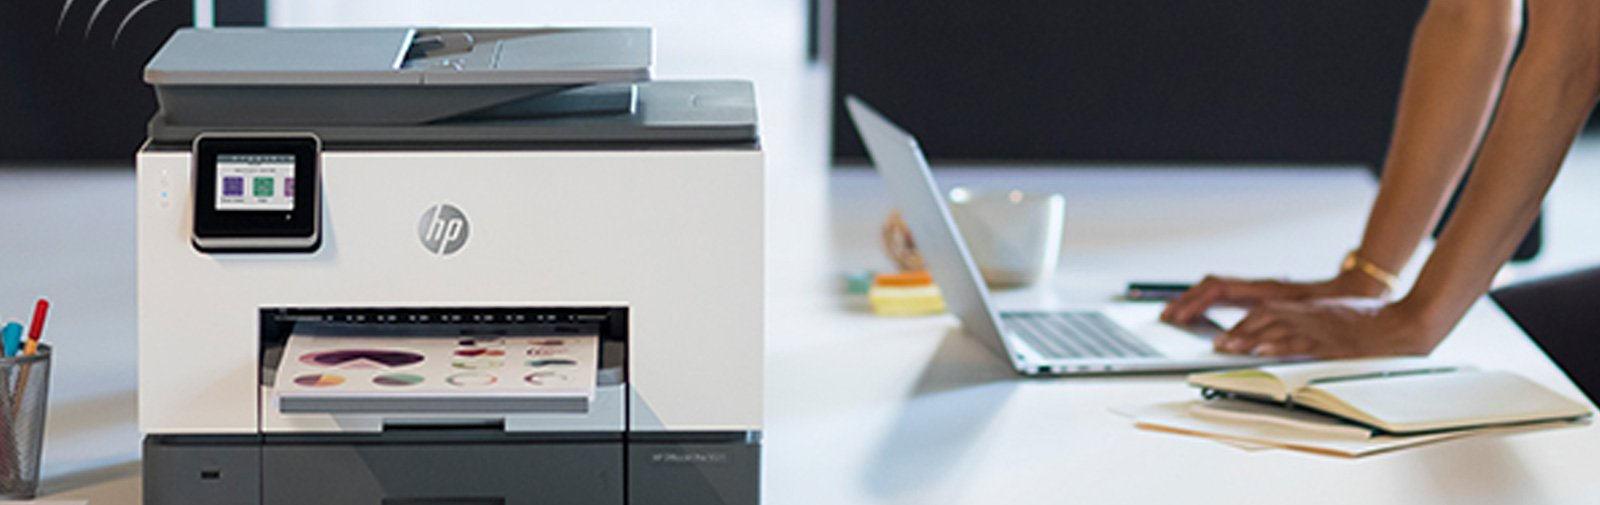 How to Connect a Printer to Your Computer